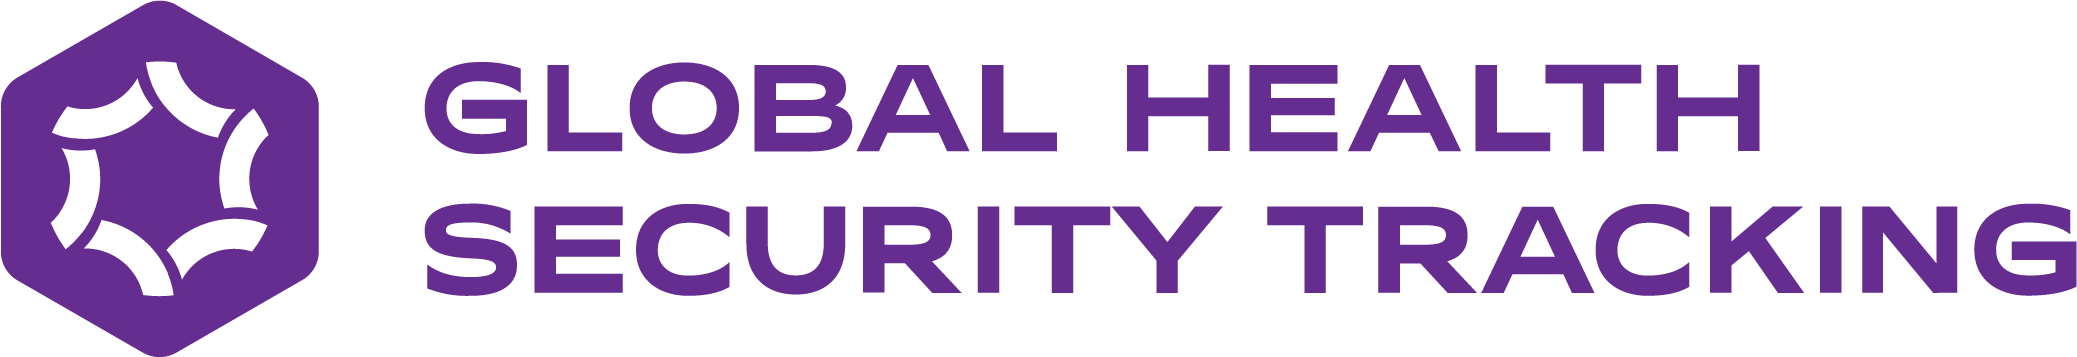 Global Health Security Tracking logo